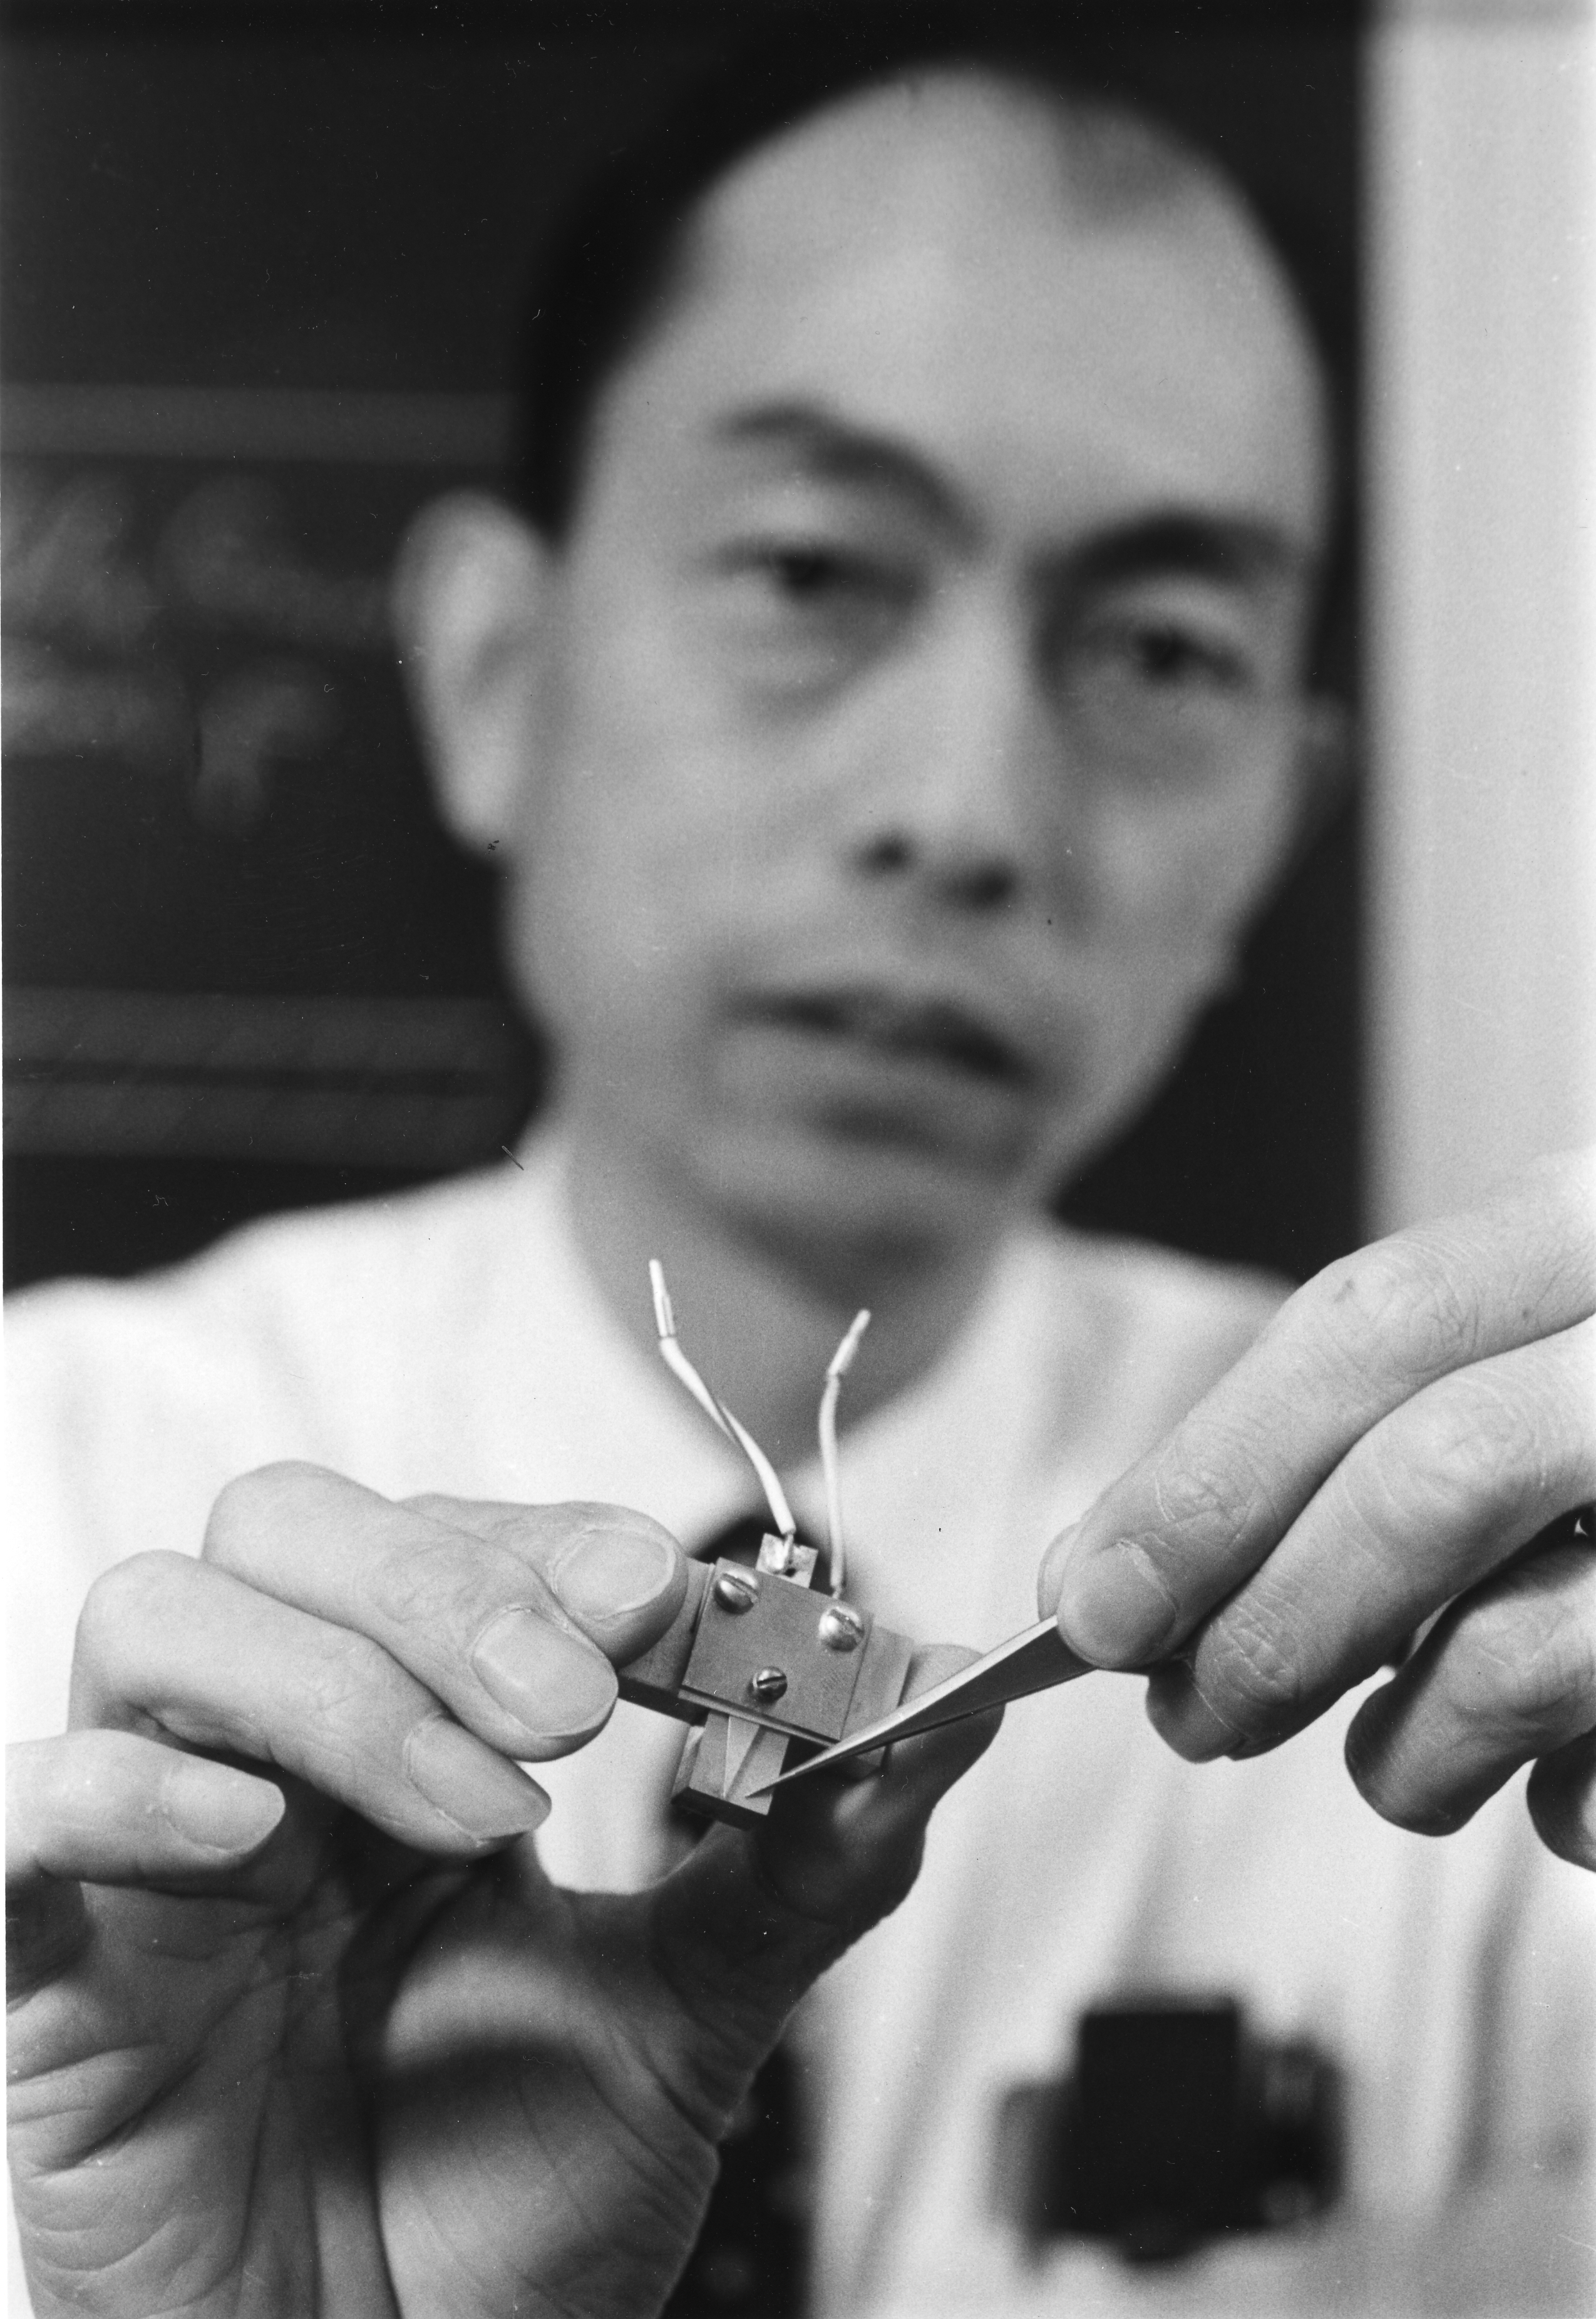 Izuo Hayashi, holding a heat absorbing device, points to the location of a new semiconductor laser.